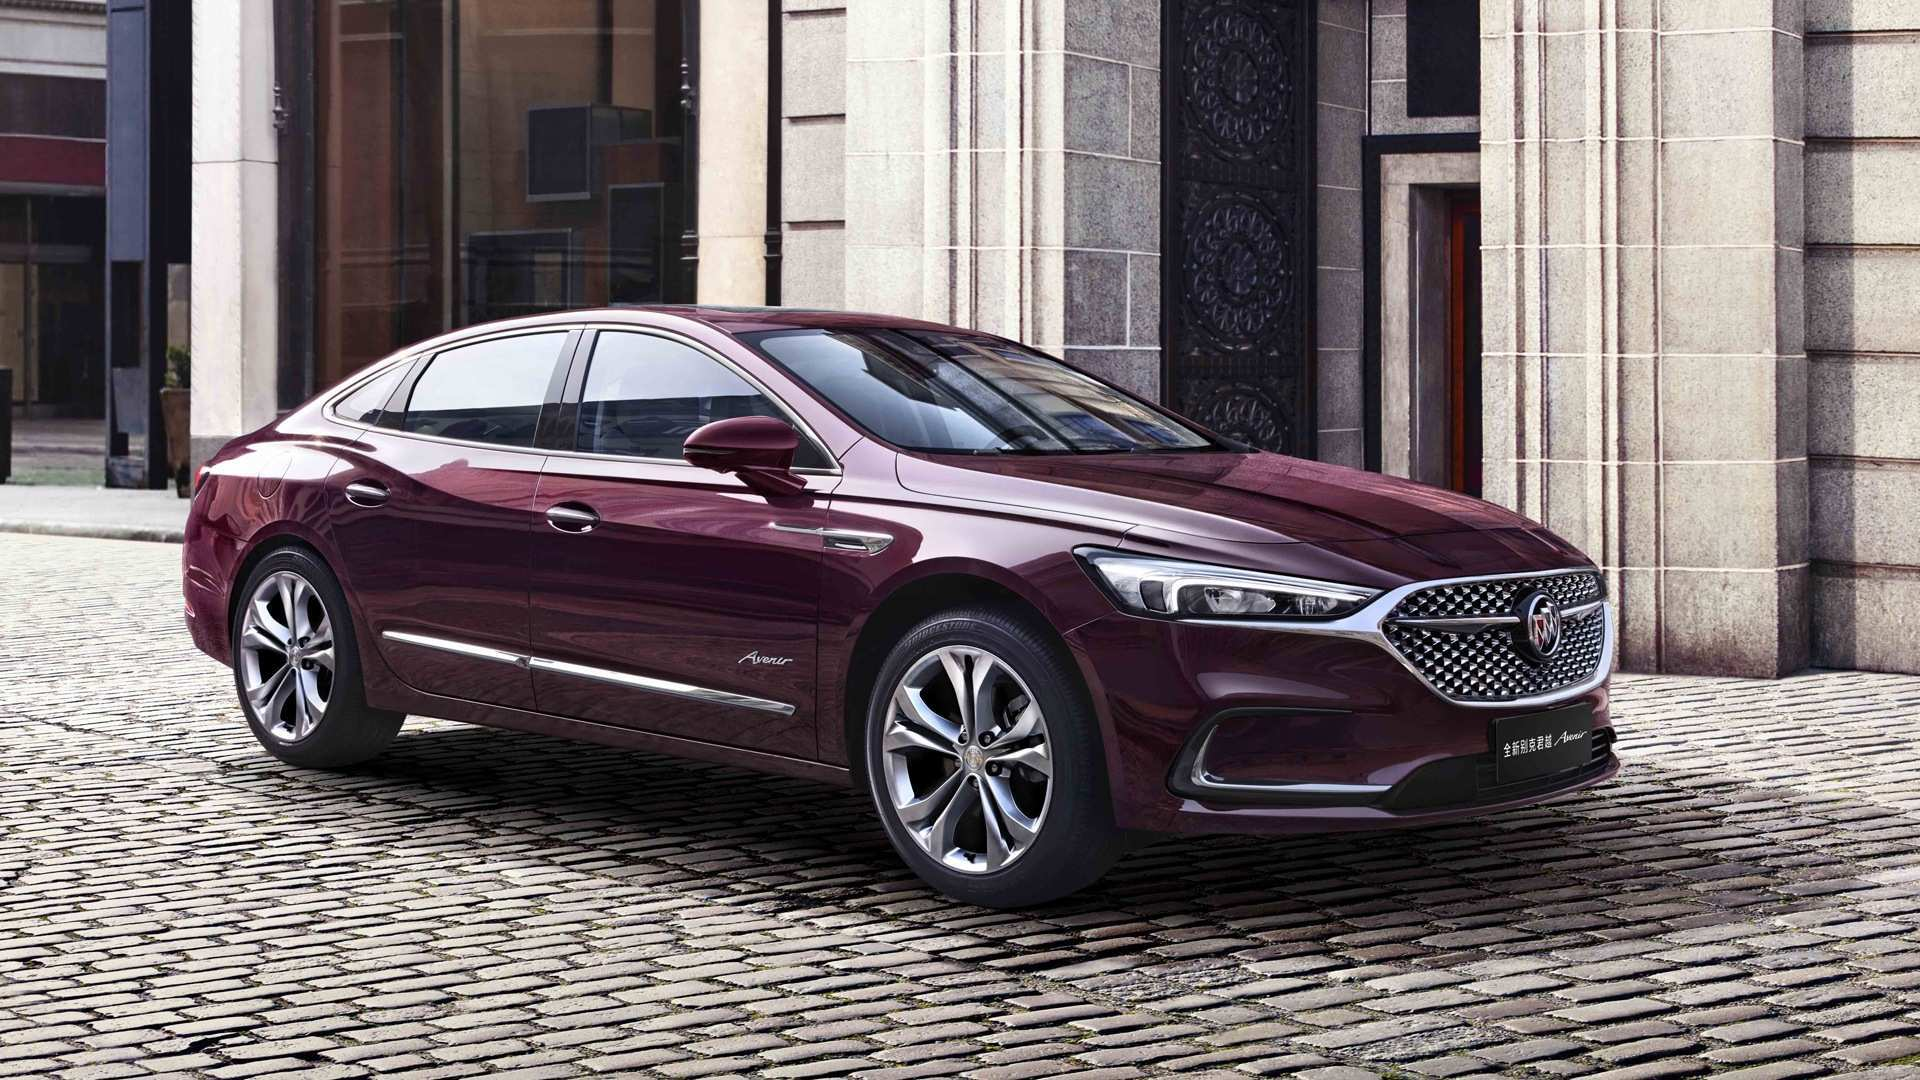 71 A 2020 Buick Vehicles Price And Release Date